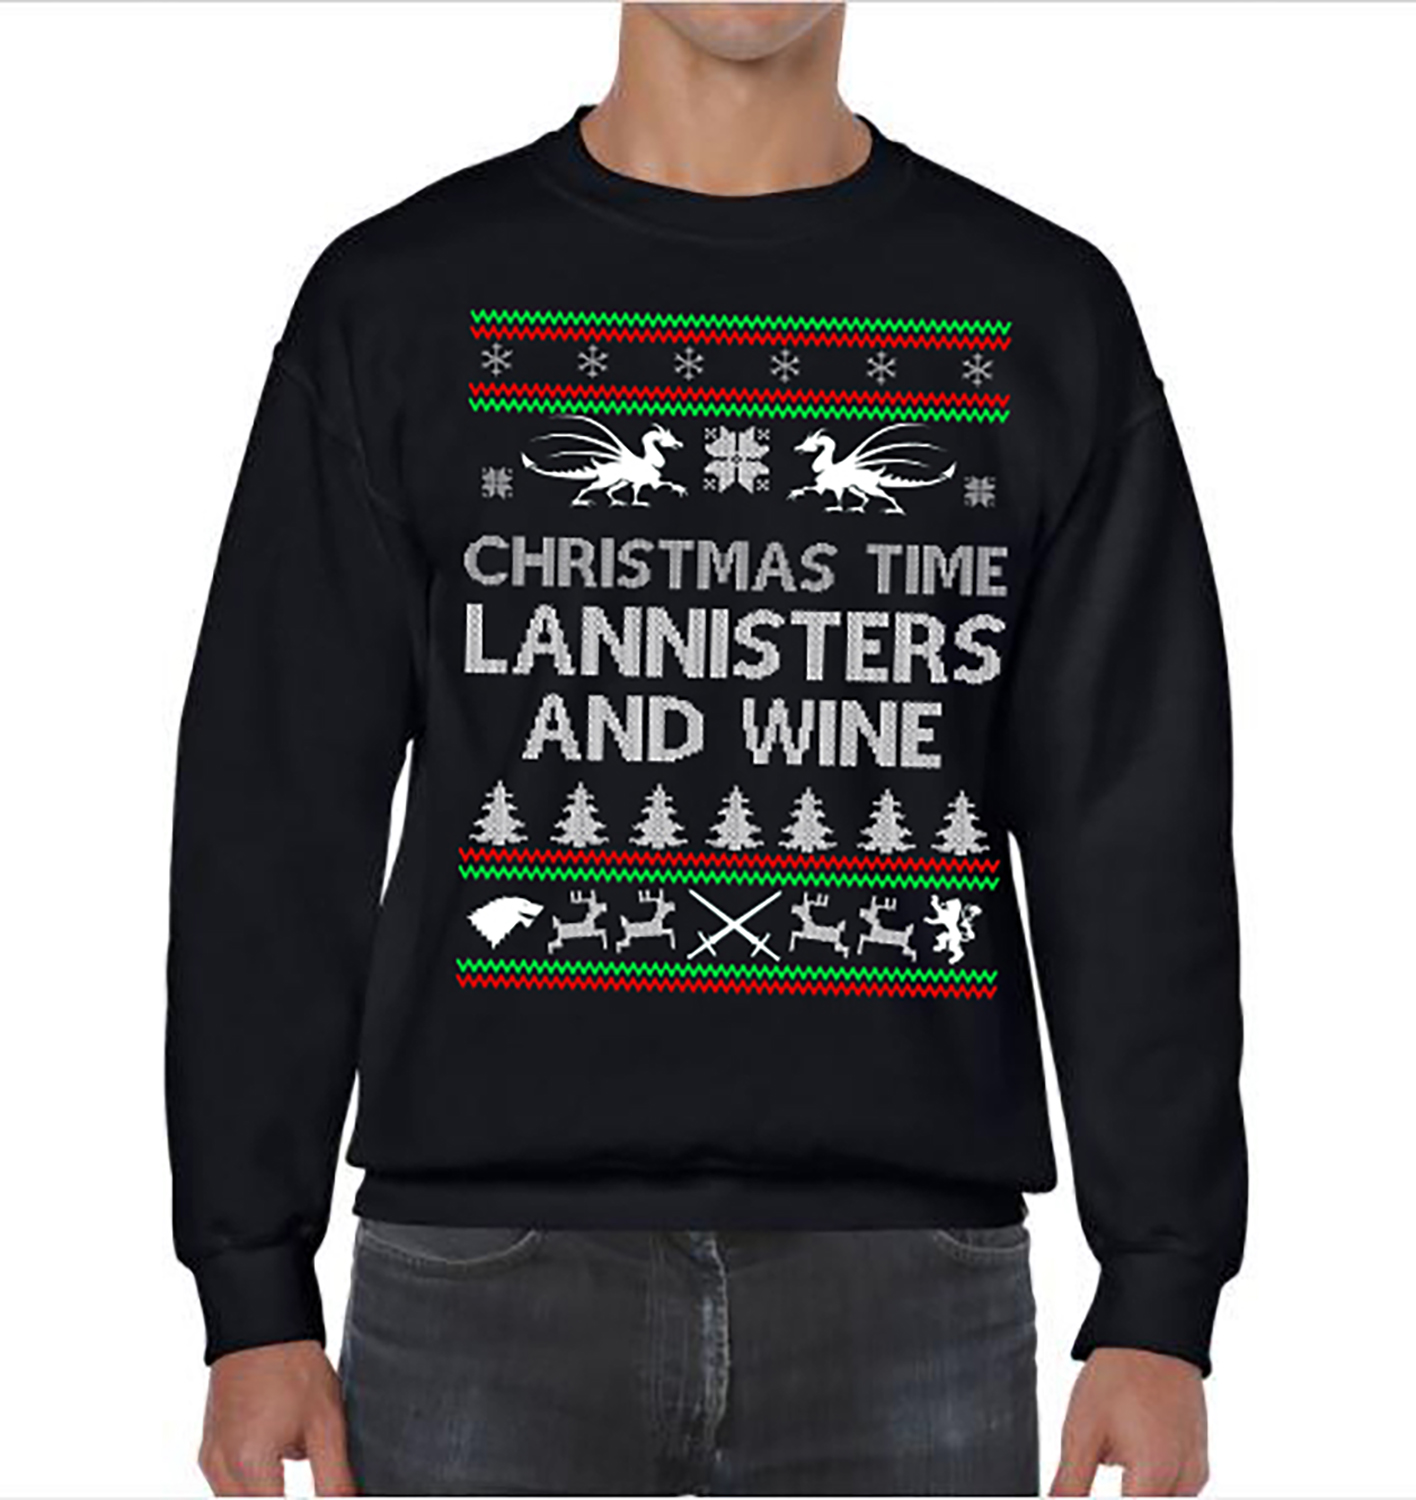 game of thrones christmas time lannisters and wine ugly christmas sweater party lannisters